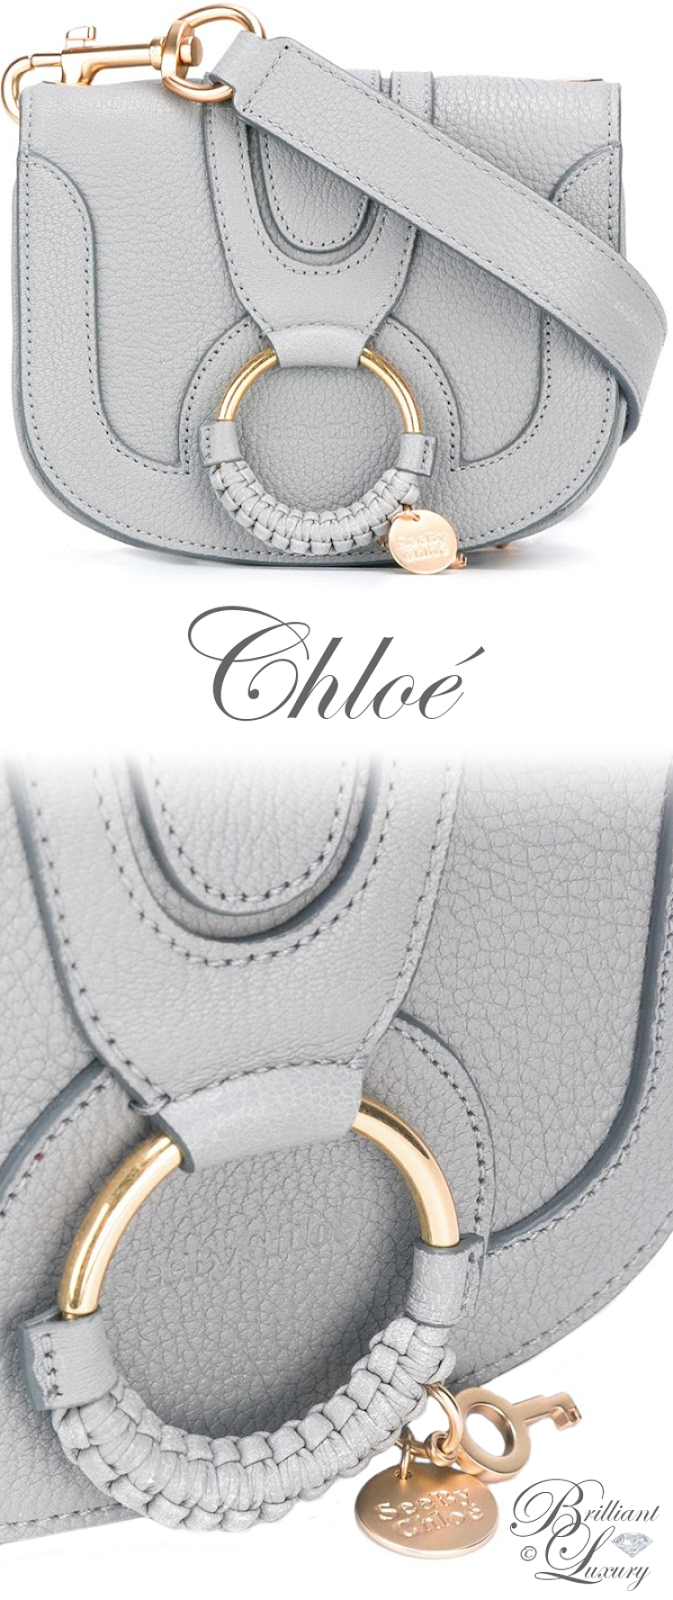 Brilliant Luxury ♦ Chloé Hana Crossbody Bag